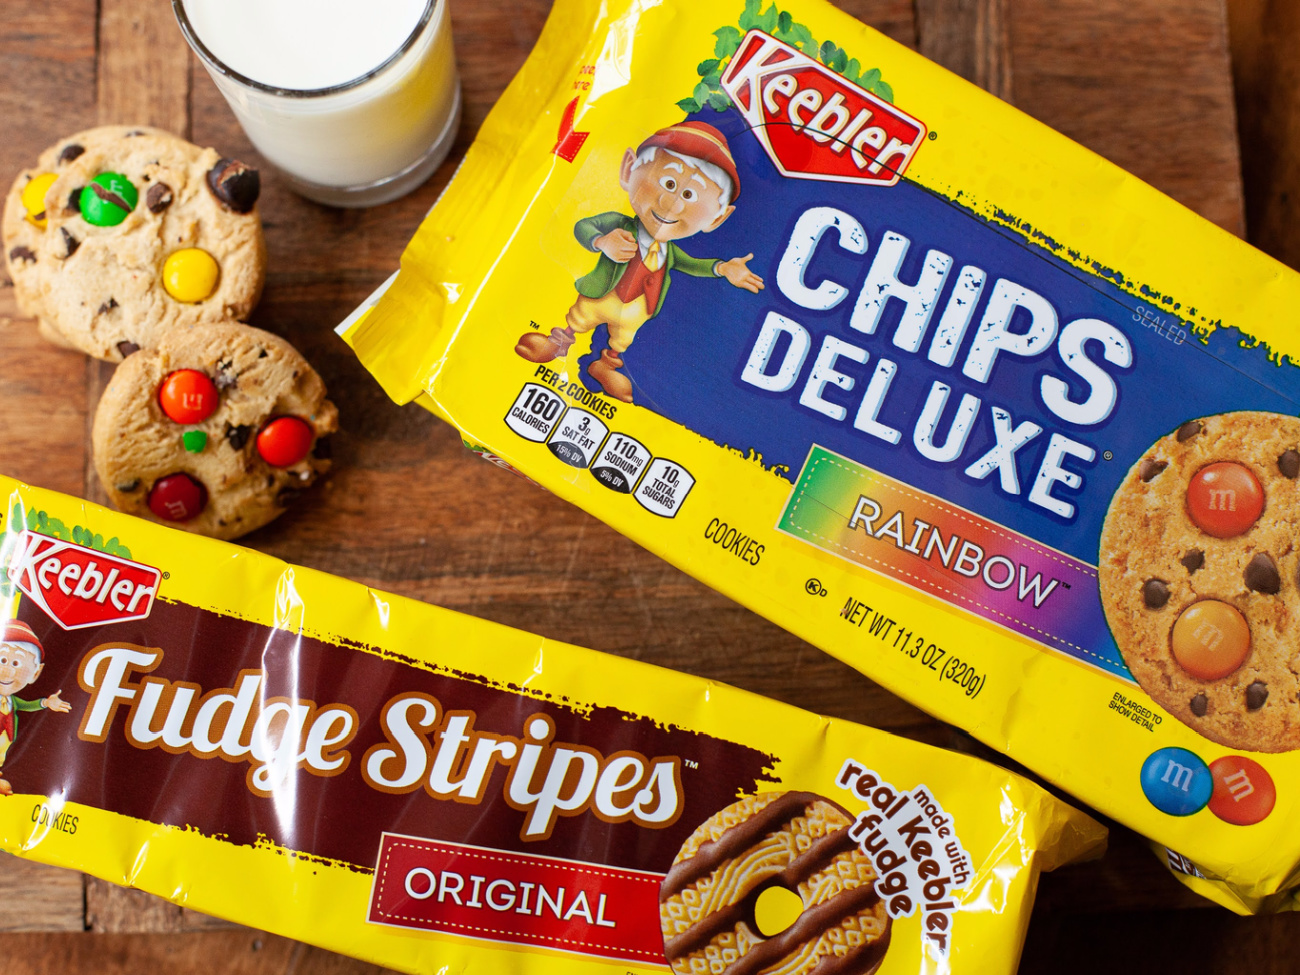 Keebler Cookies As Low As 29¢ At Publix on I Heart Publix